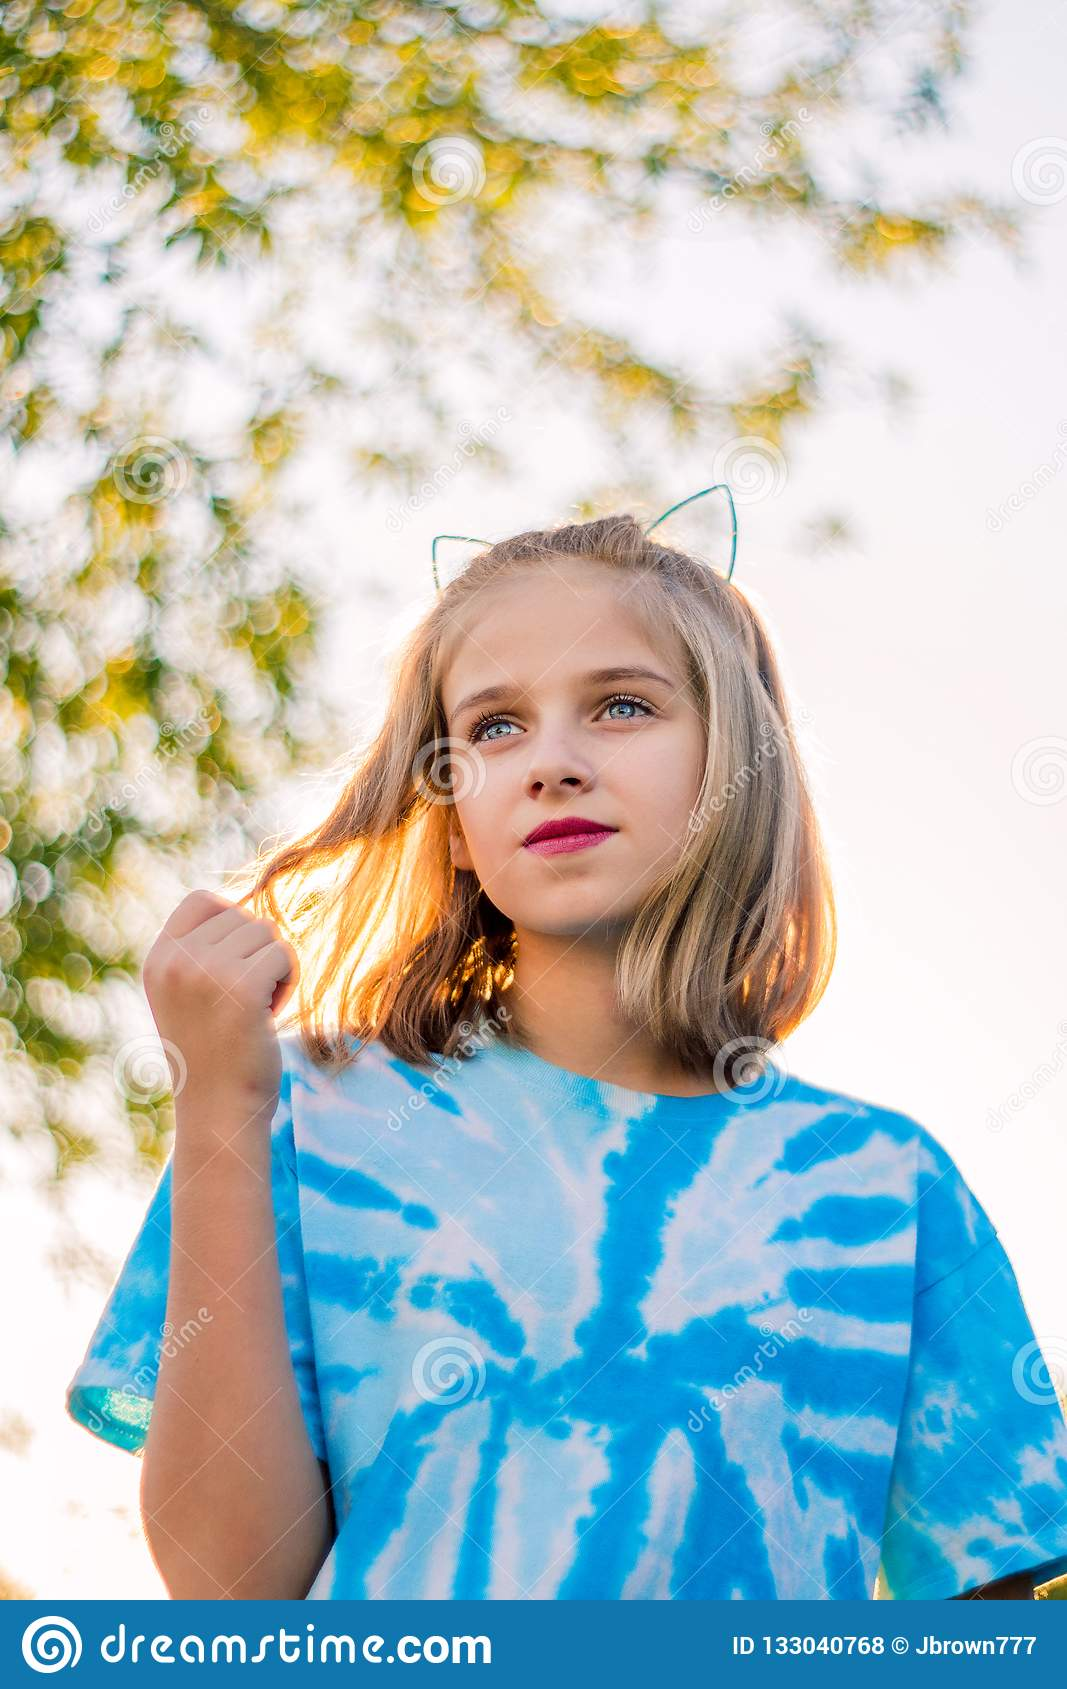 Wistful Nostalgic Image of Young Blond Girl Playing With Hair